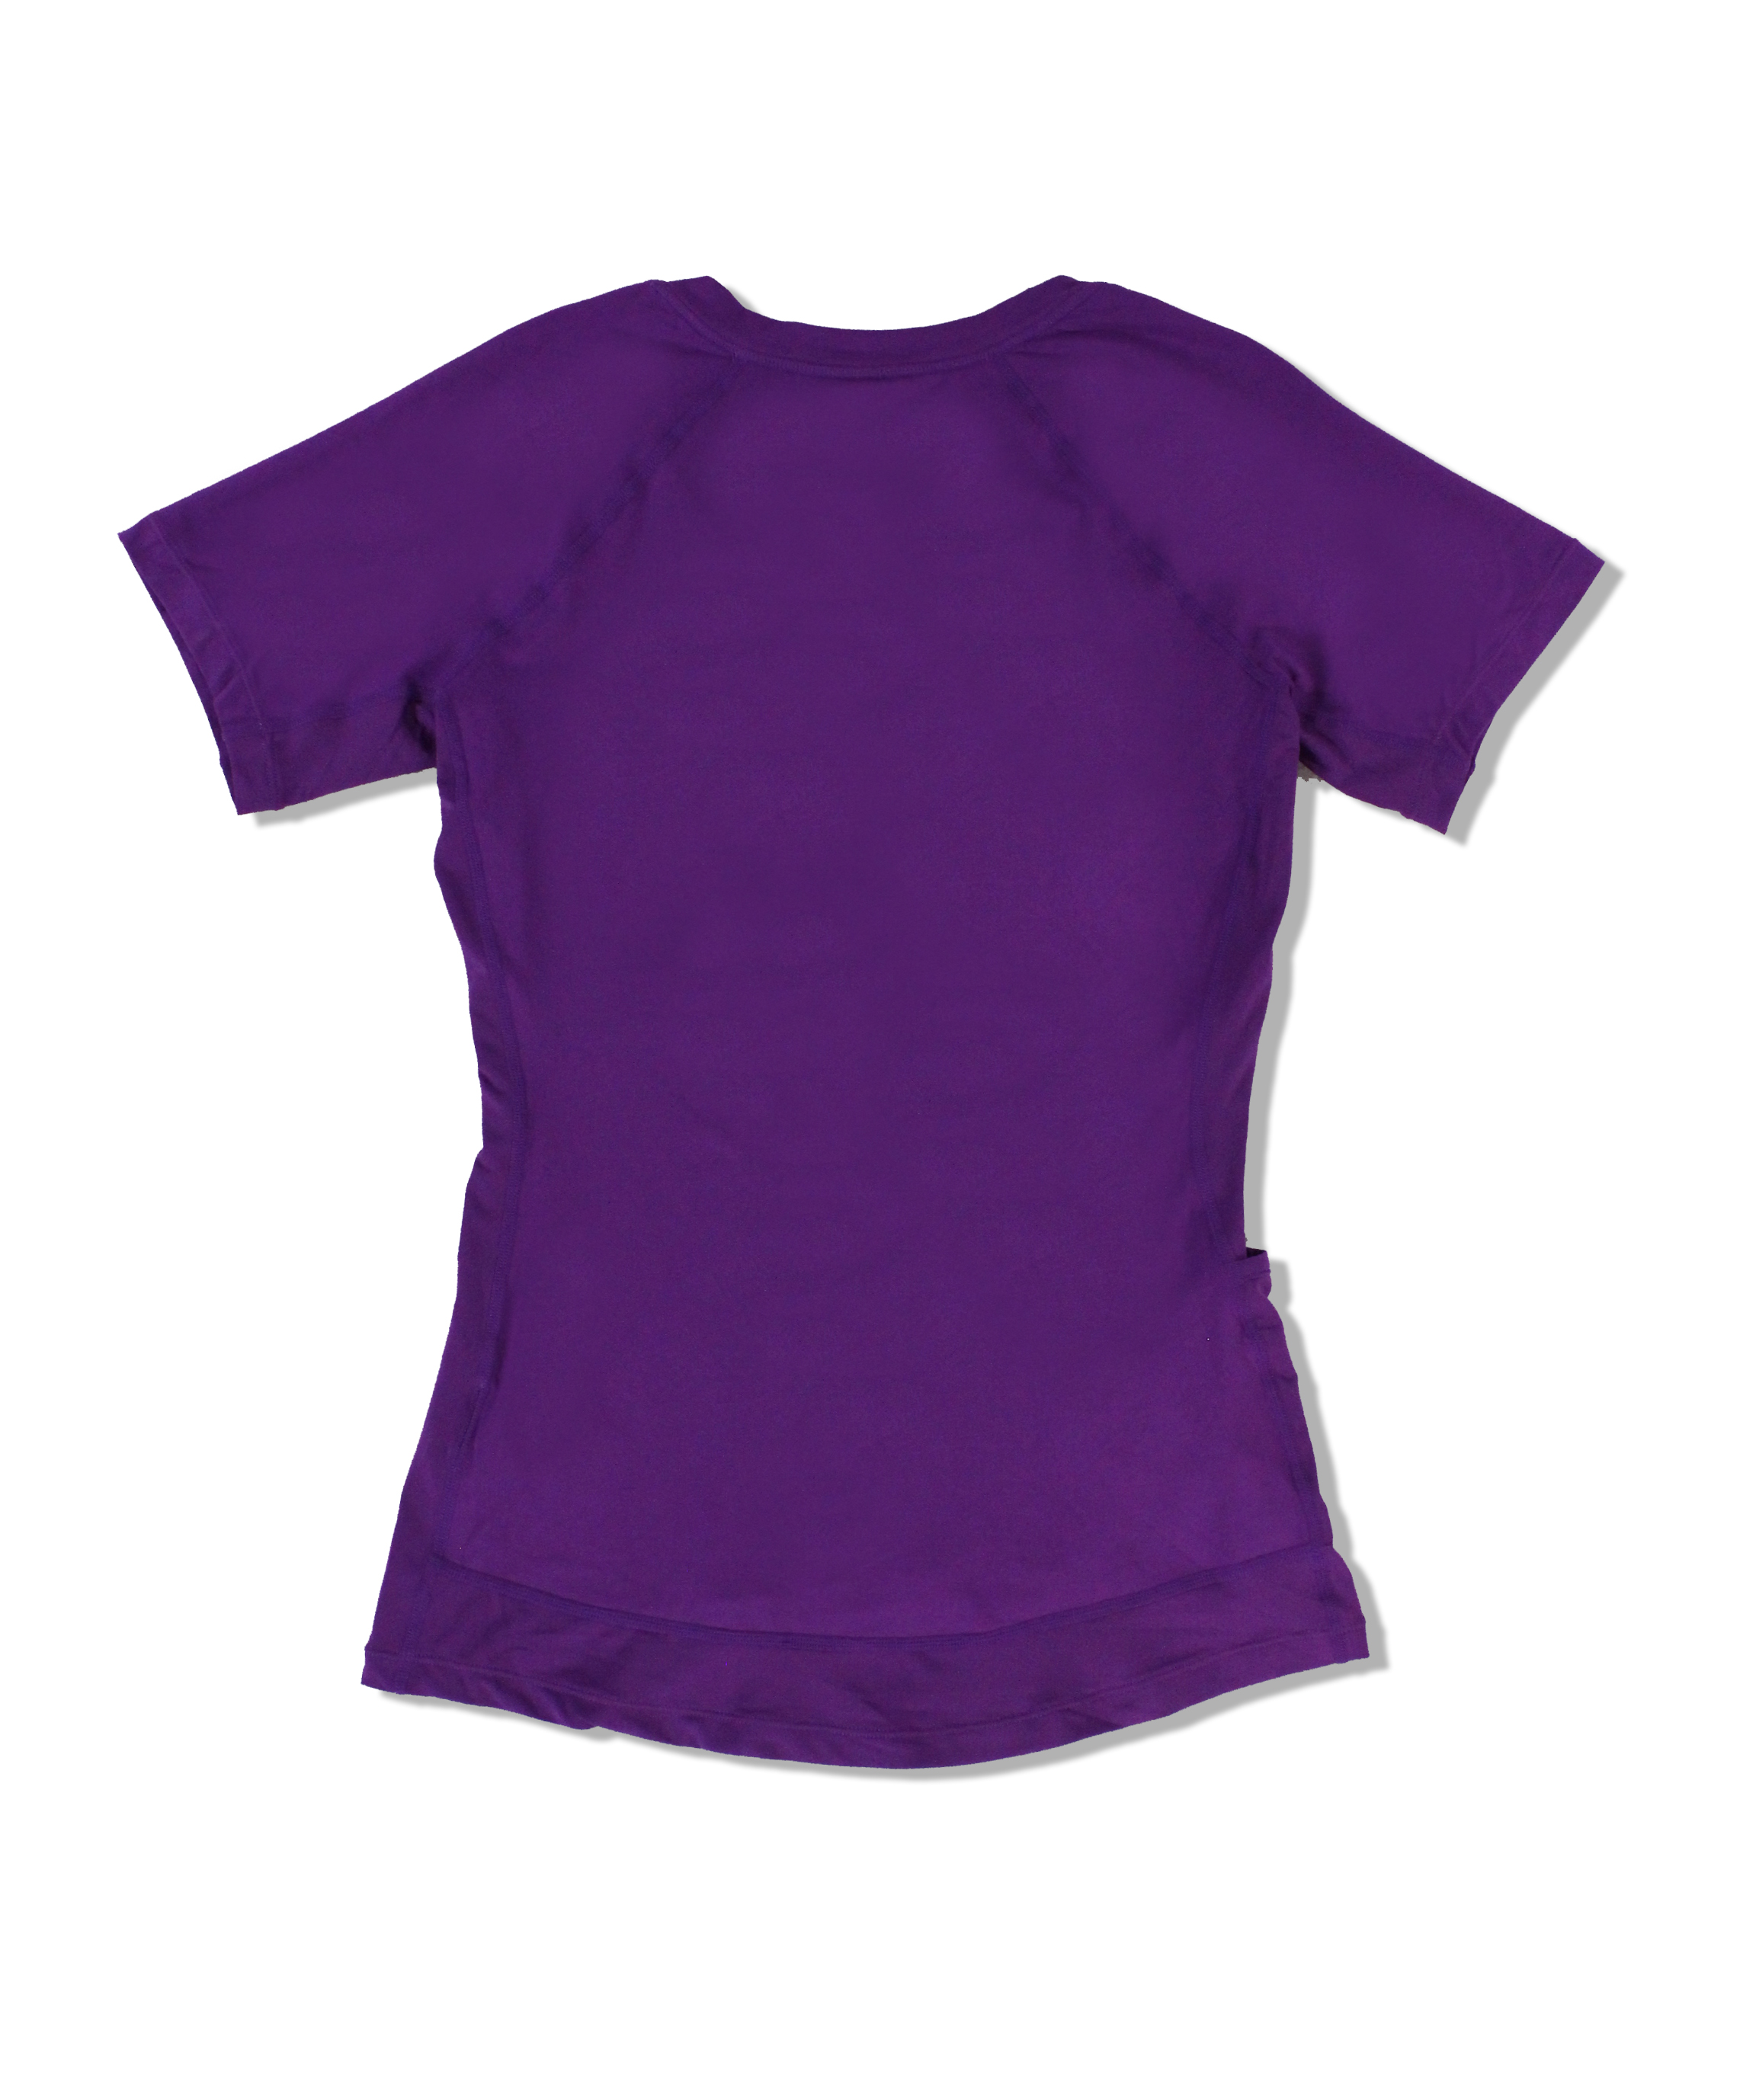 Asics-NEW-Solid-Hue-Women-039-s-V-Neck-Performance-ASX-Dry-T-Shirt-Top-38 thumbnail 13